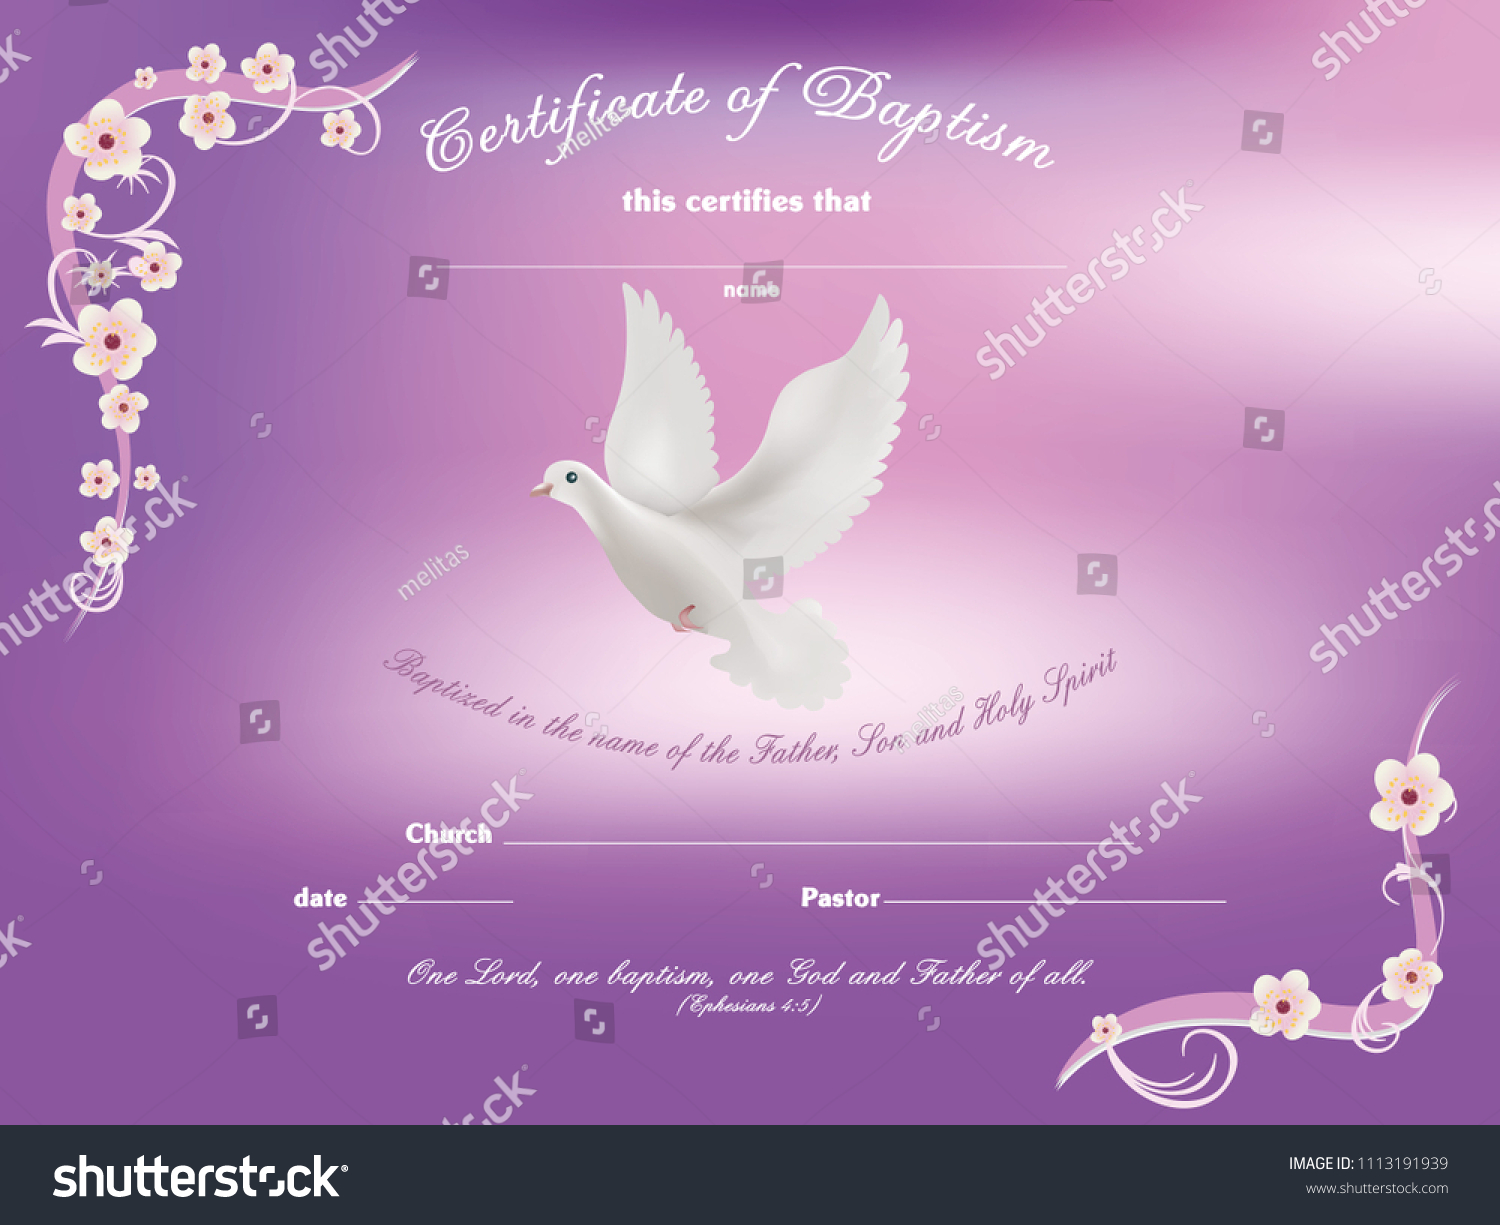 certificate baptism template with dove and and flowery frame on pink background